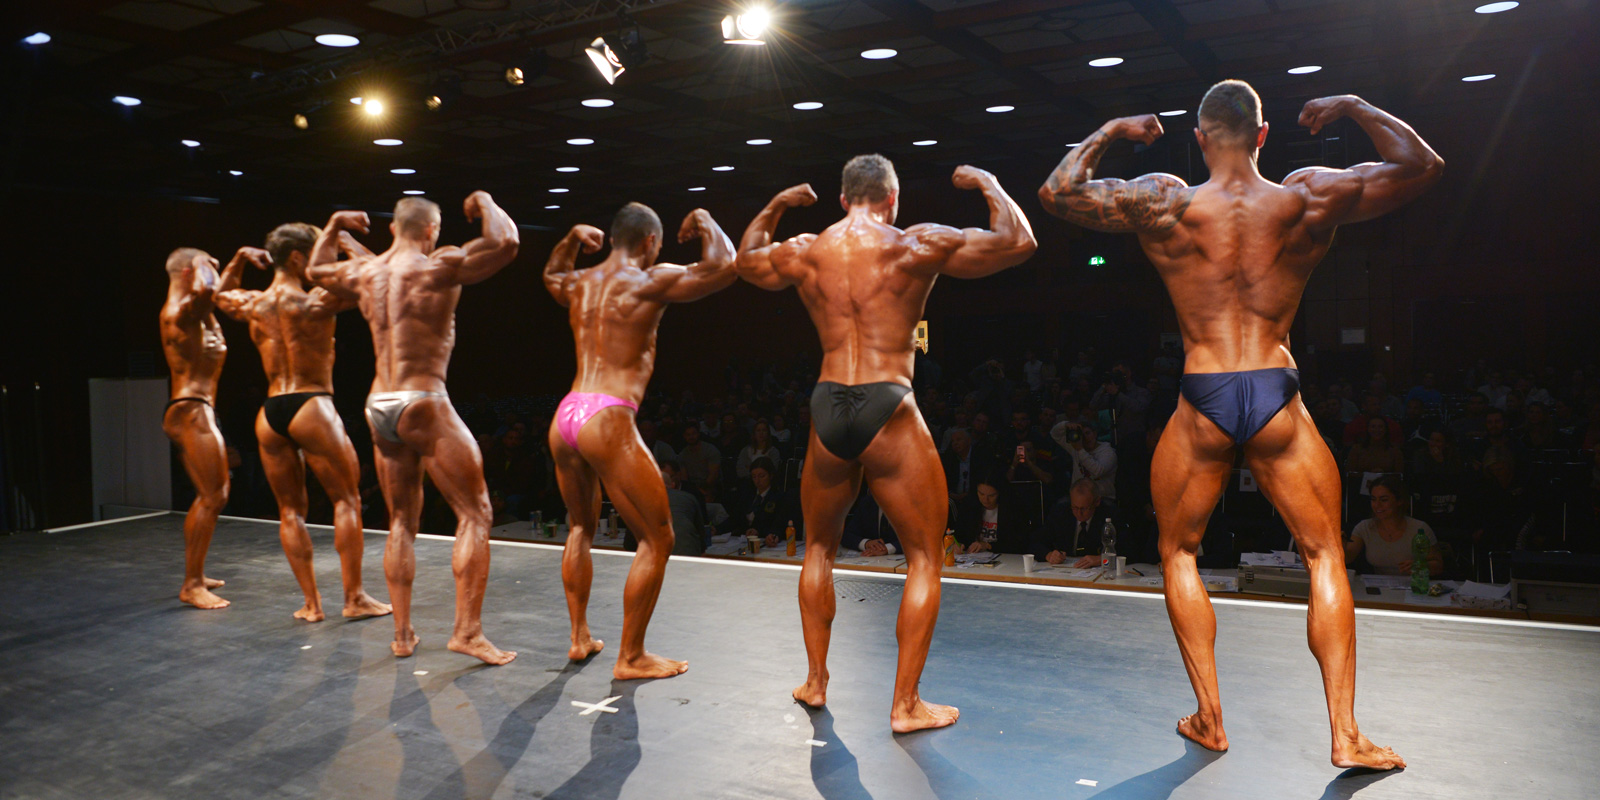 Why It's Easier To Fail With aromatasehemmer bodybuilding Than You Might Think